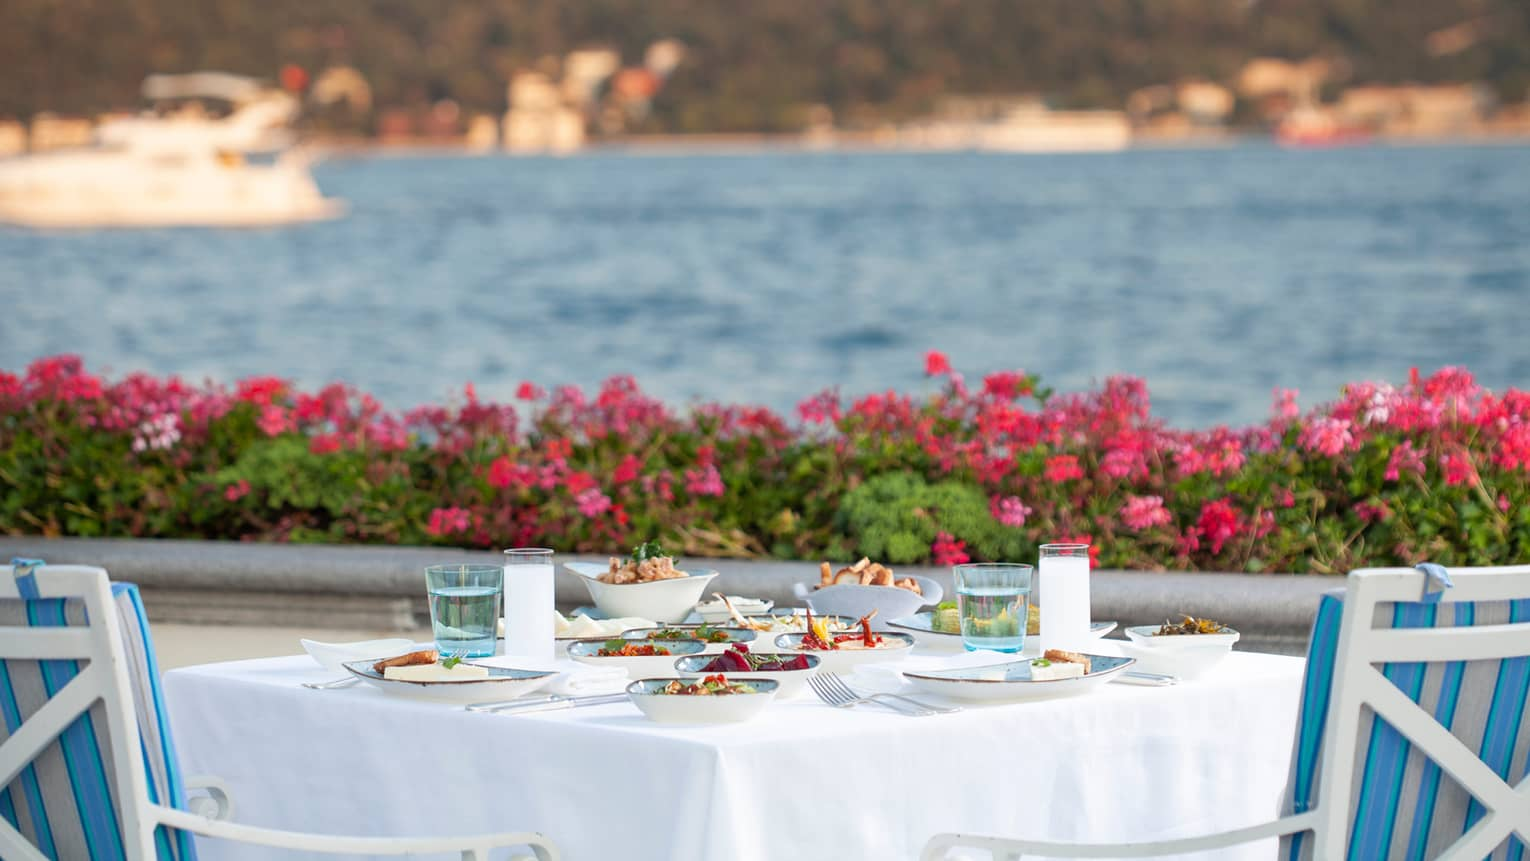 A meal is set on a square table with white tablecloth, two blue cushioned chairs, looking out to sea